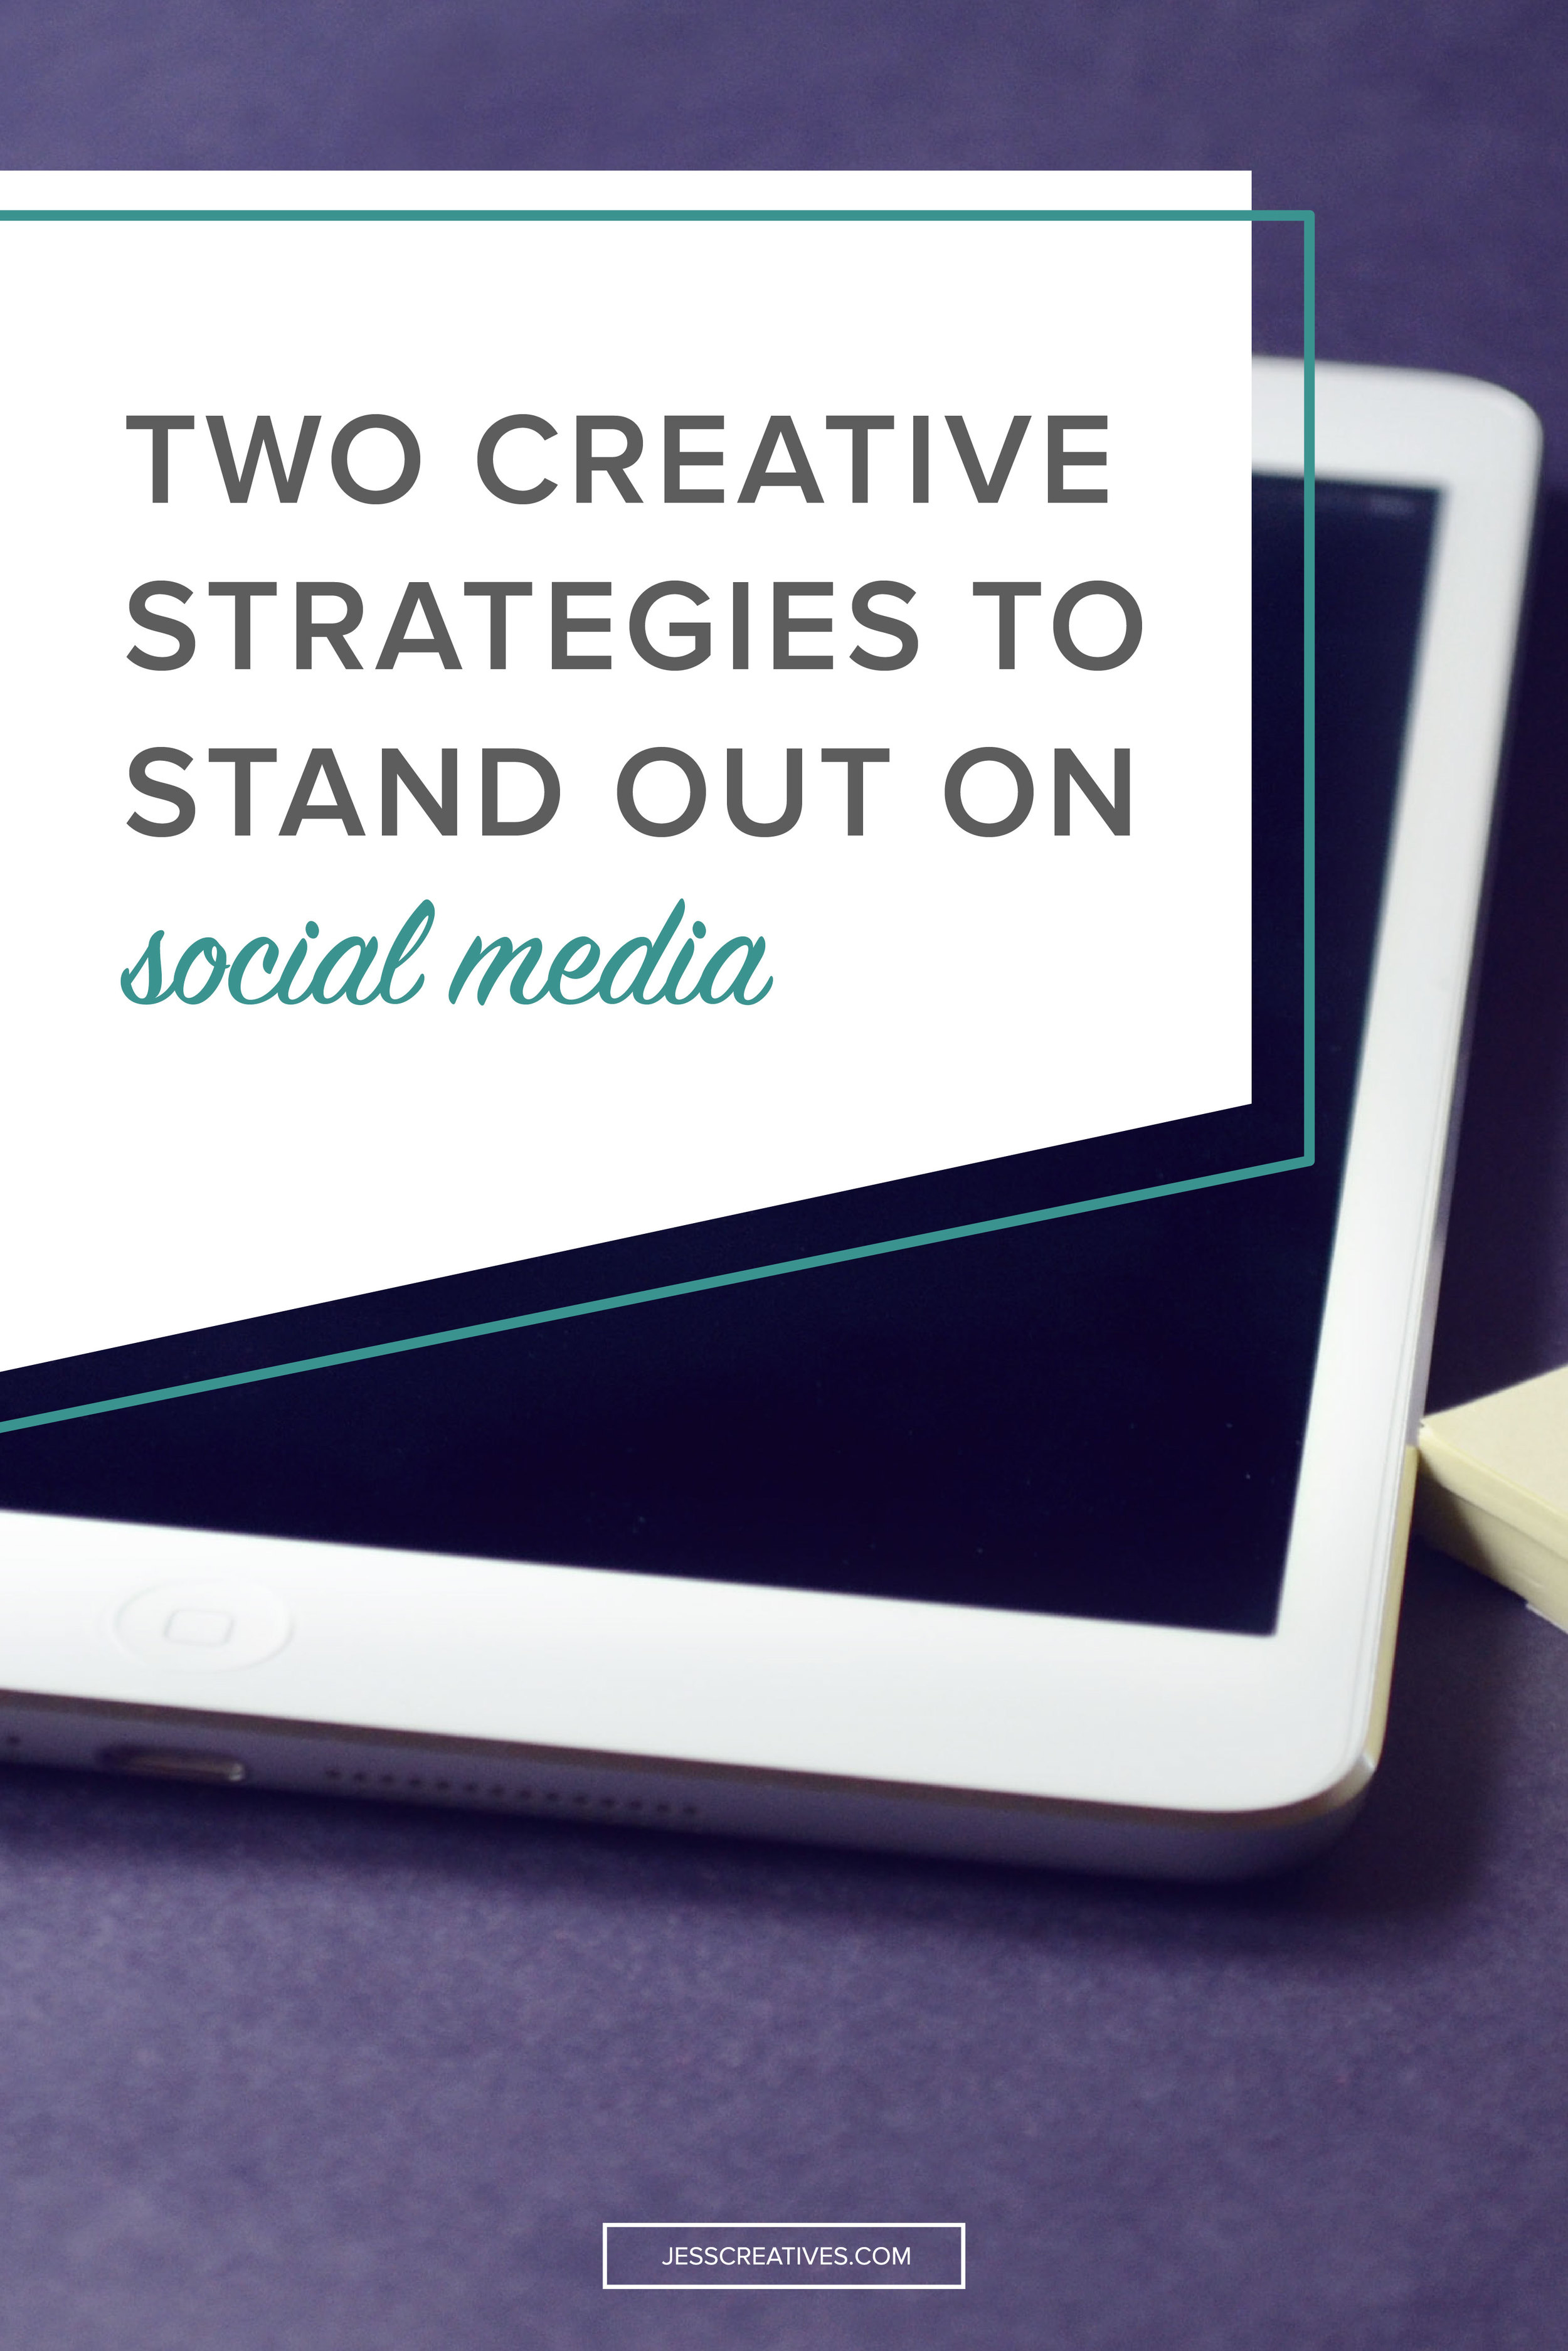 Two creative strategies to stand out on social media